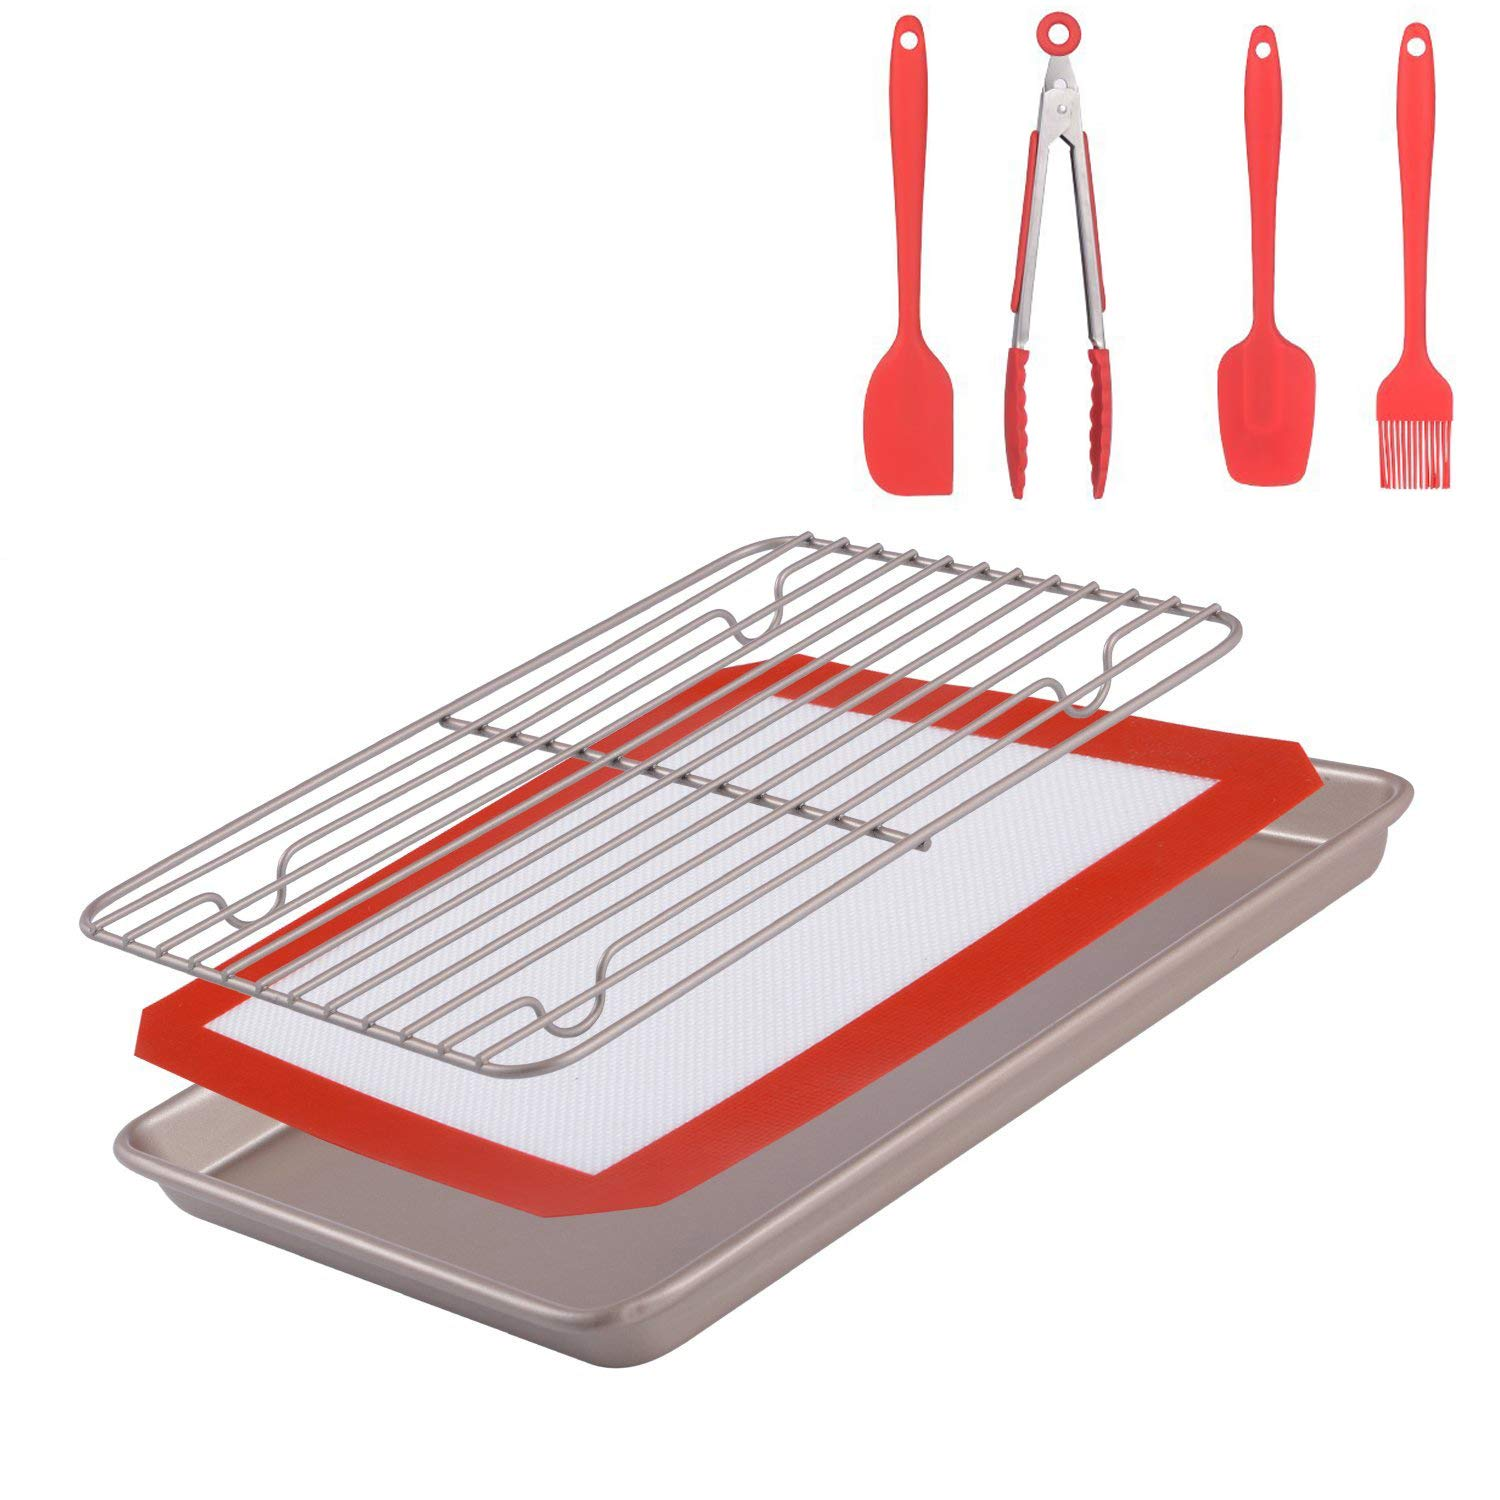 Merya Non-Stick Baking Pan &Silicone Baking Mat& Stainless Steel Cooling Rack &Silicone Basting Set(Oil Brush,Spatula,Spoon,Kitchen Tong) BBQ Grilling, Marinating,Baking .7 pcs/Set Baking Gift